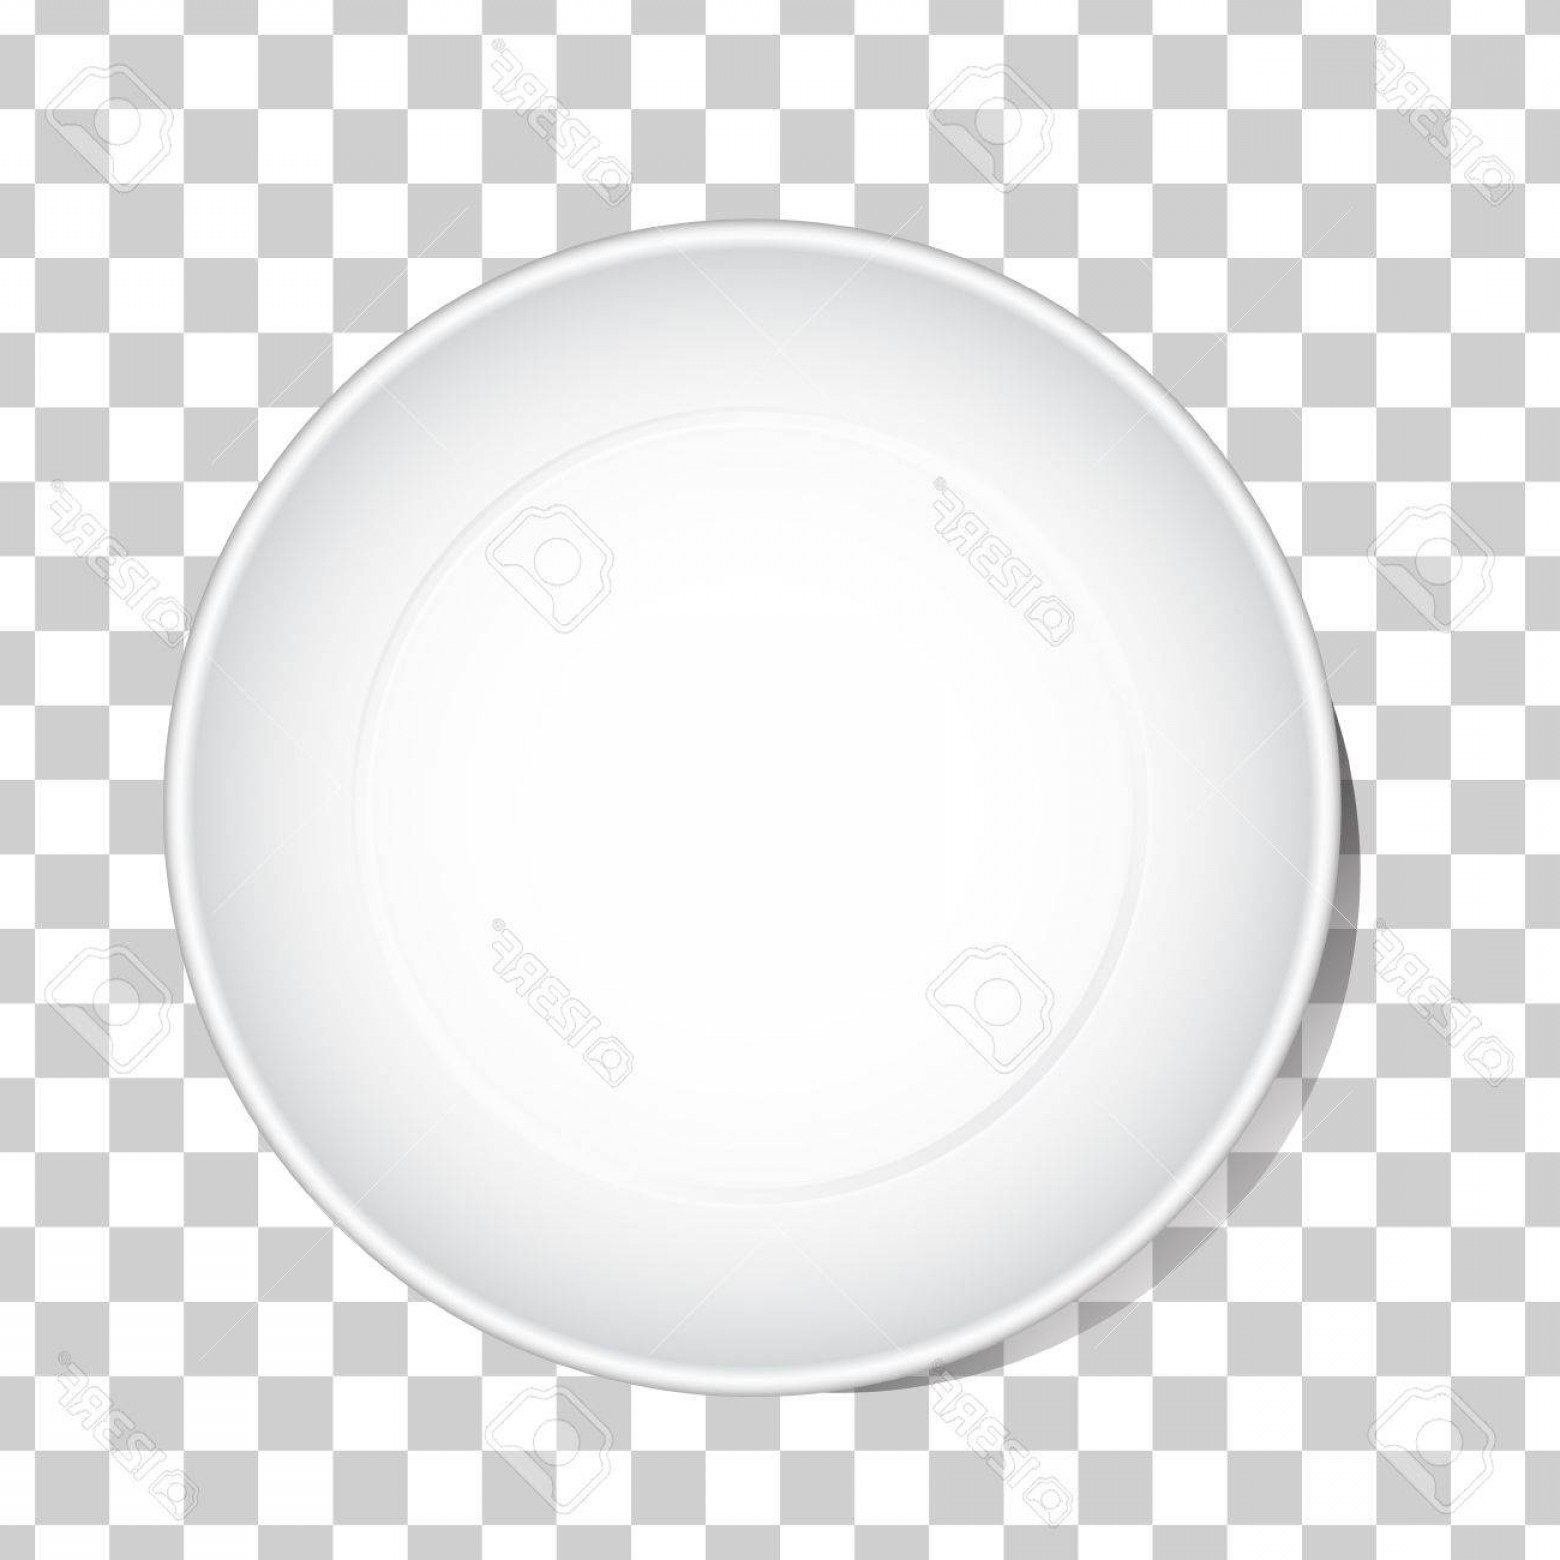 1560x1560 Photostock Vector Empty White Dish Plate Background Vector Round